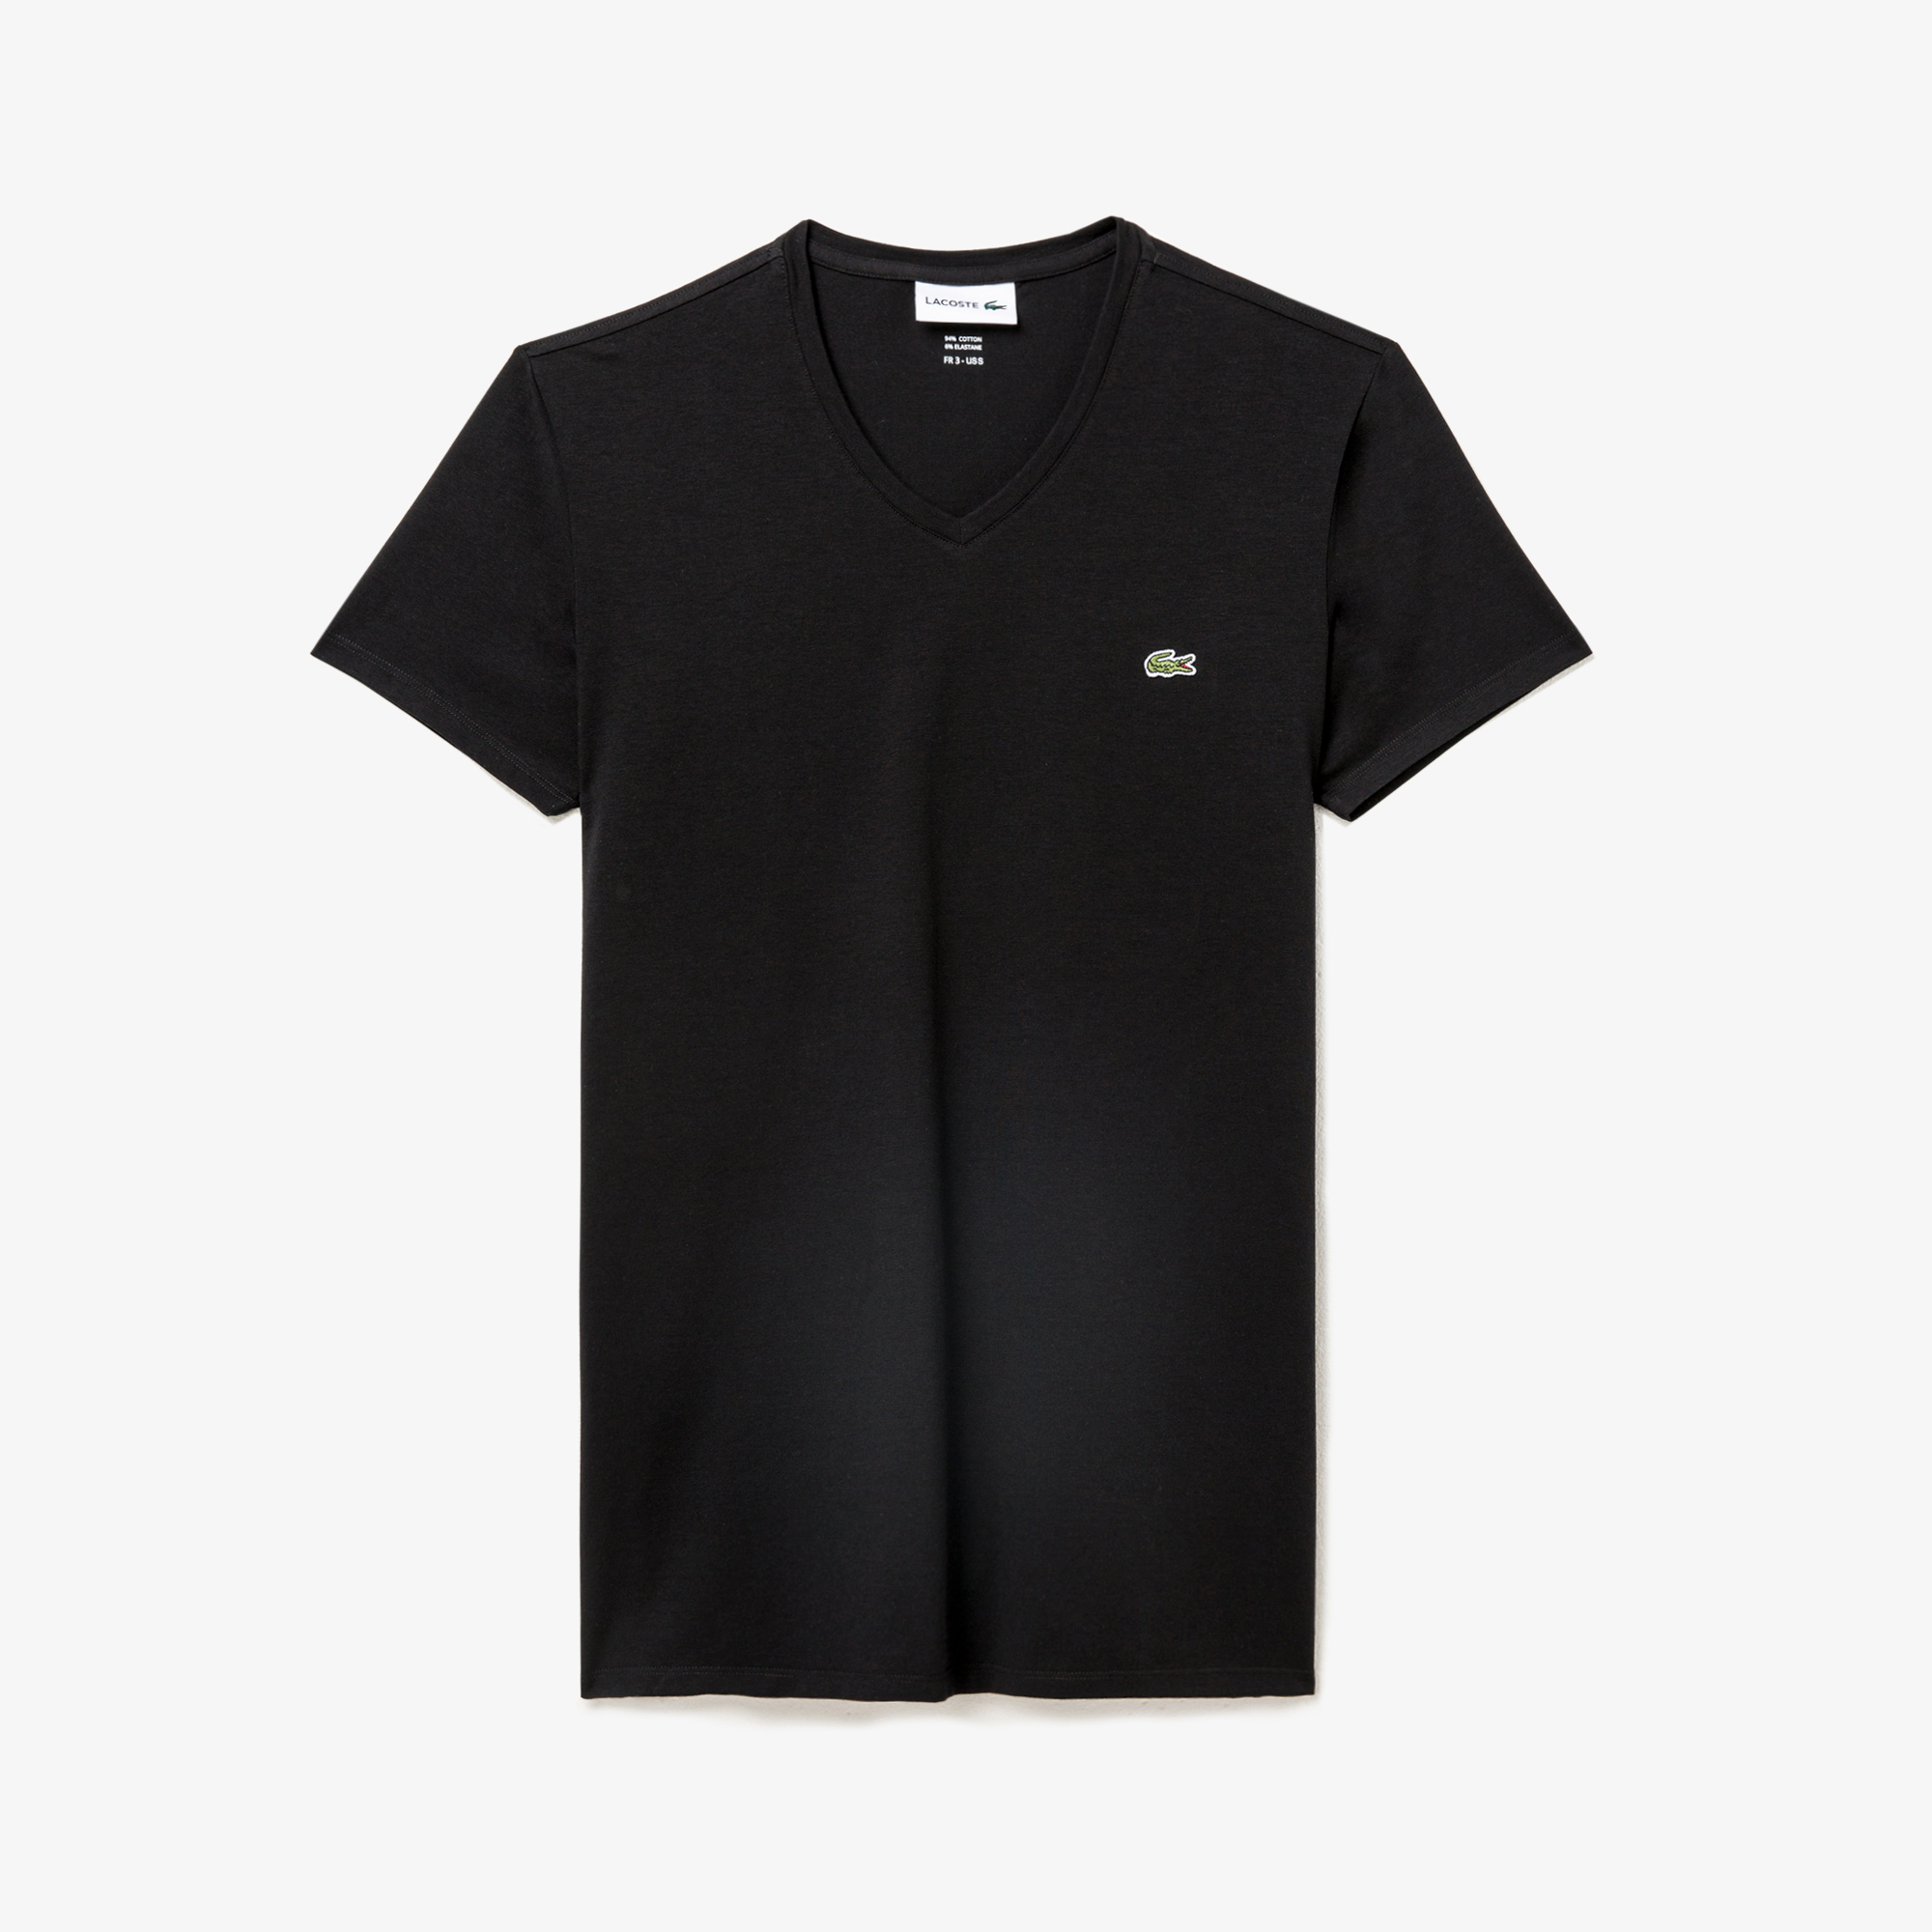 Lacoste Men's V-Neck T-Shirt